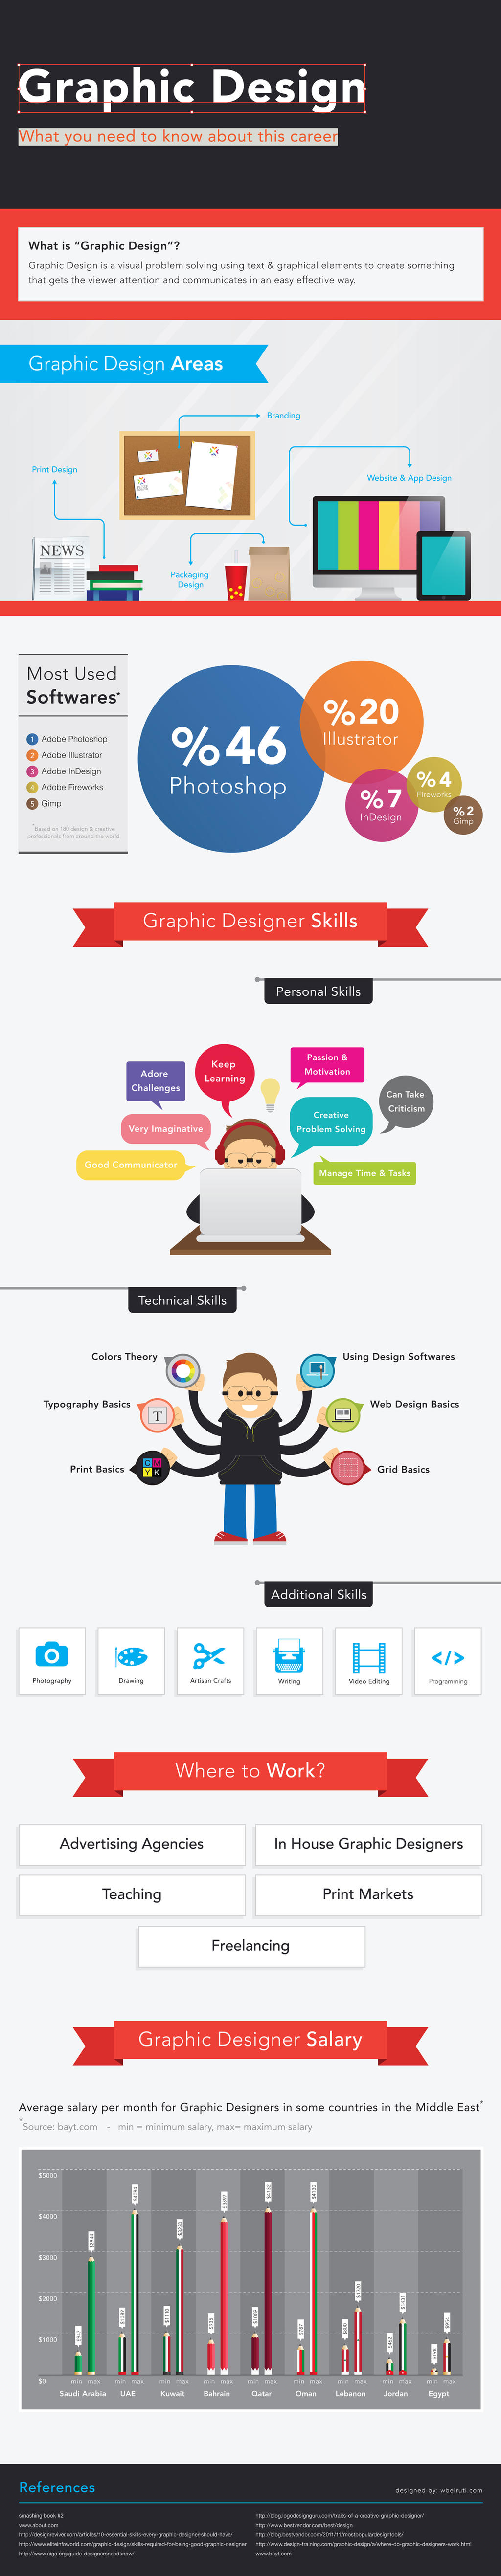 Graphic Design Infographic by wbeiruti